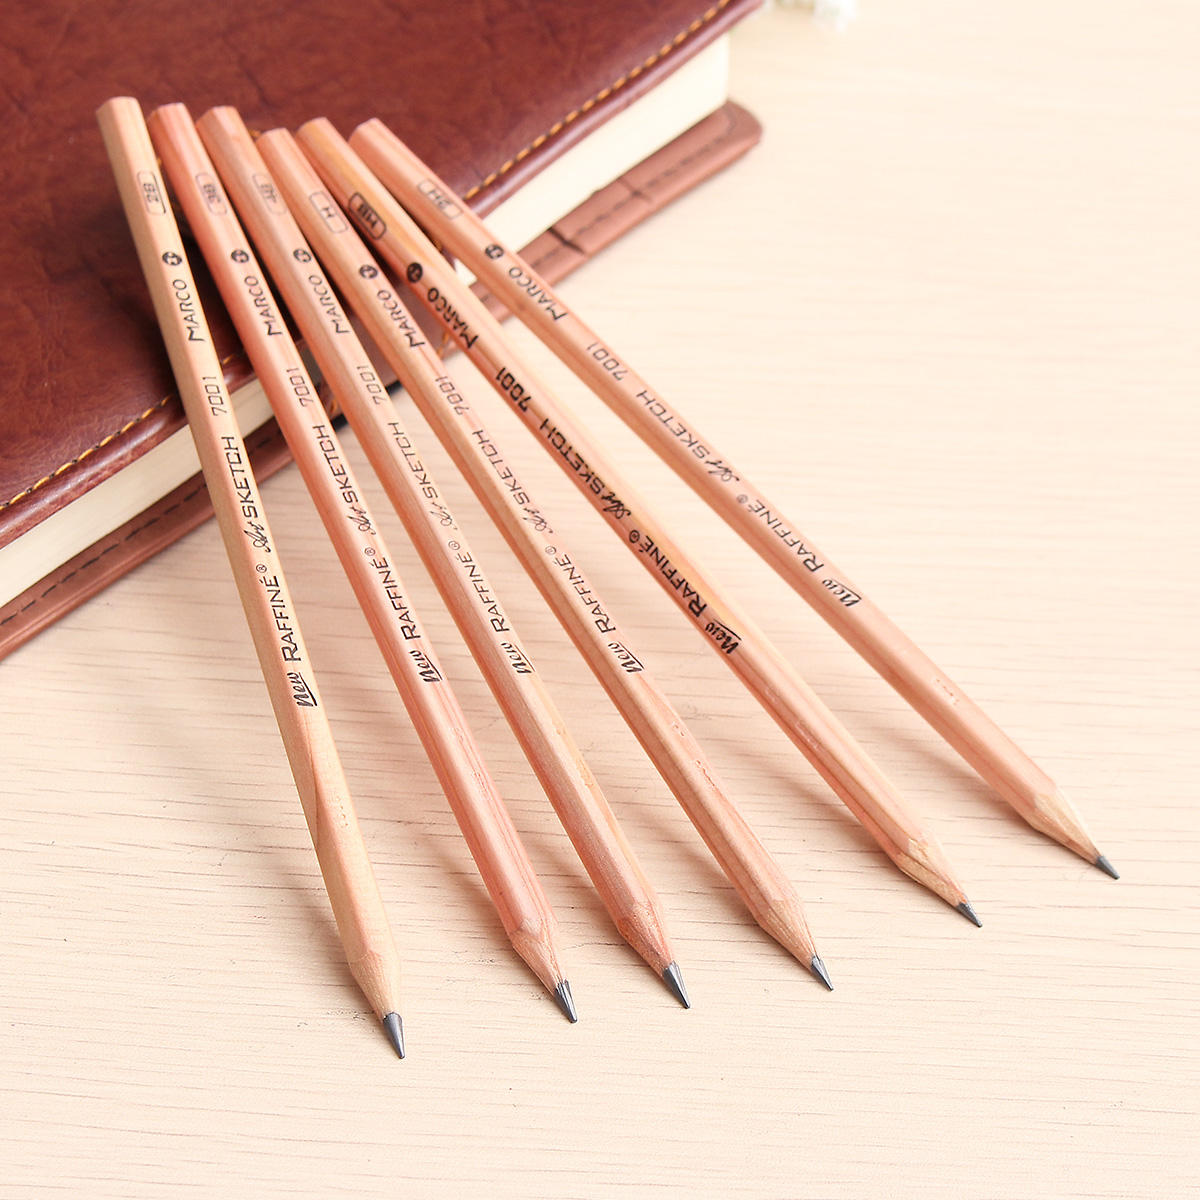 12 pcs pencil set profession log sketch art drawing wood painting pencil office school sale banggood com sold out